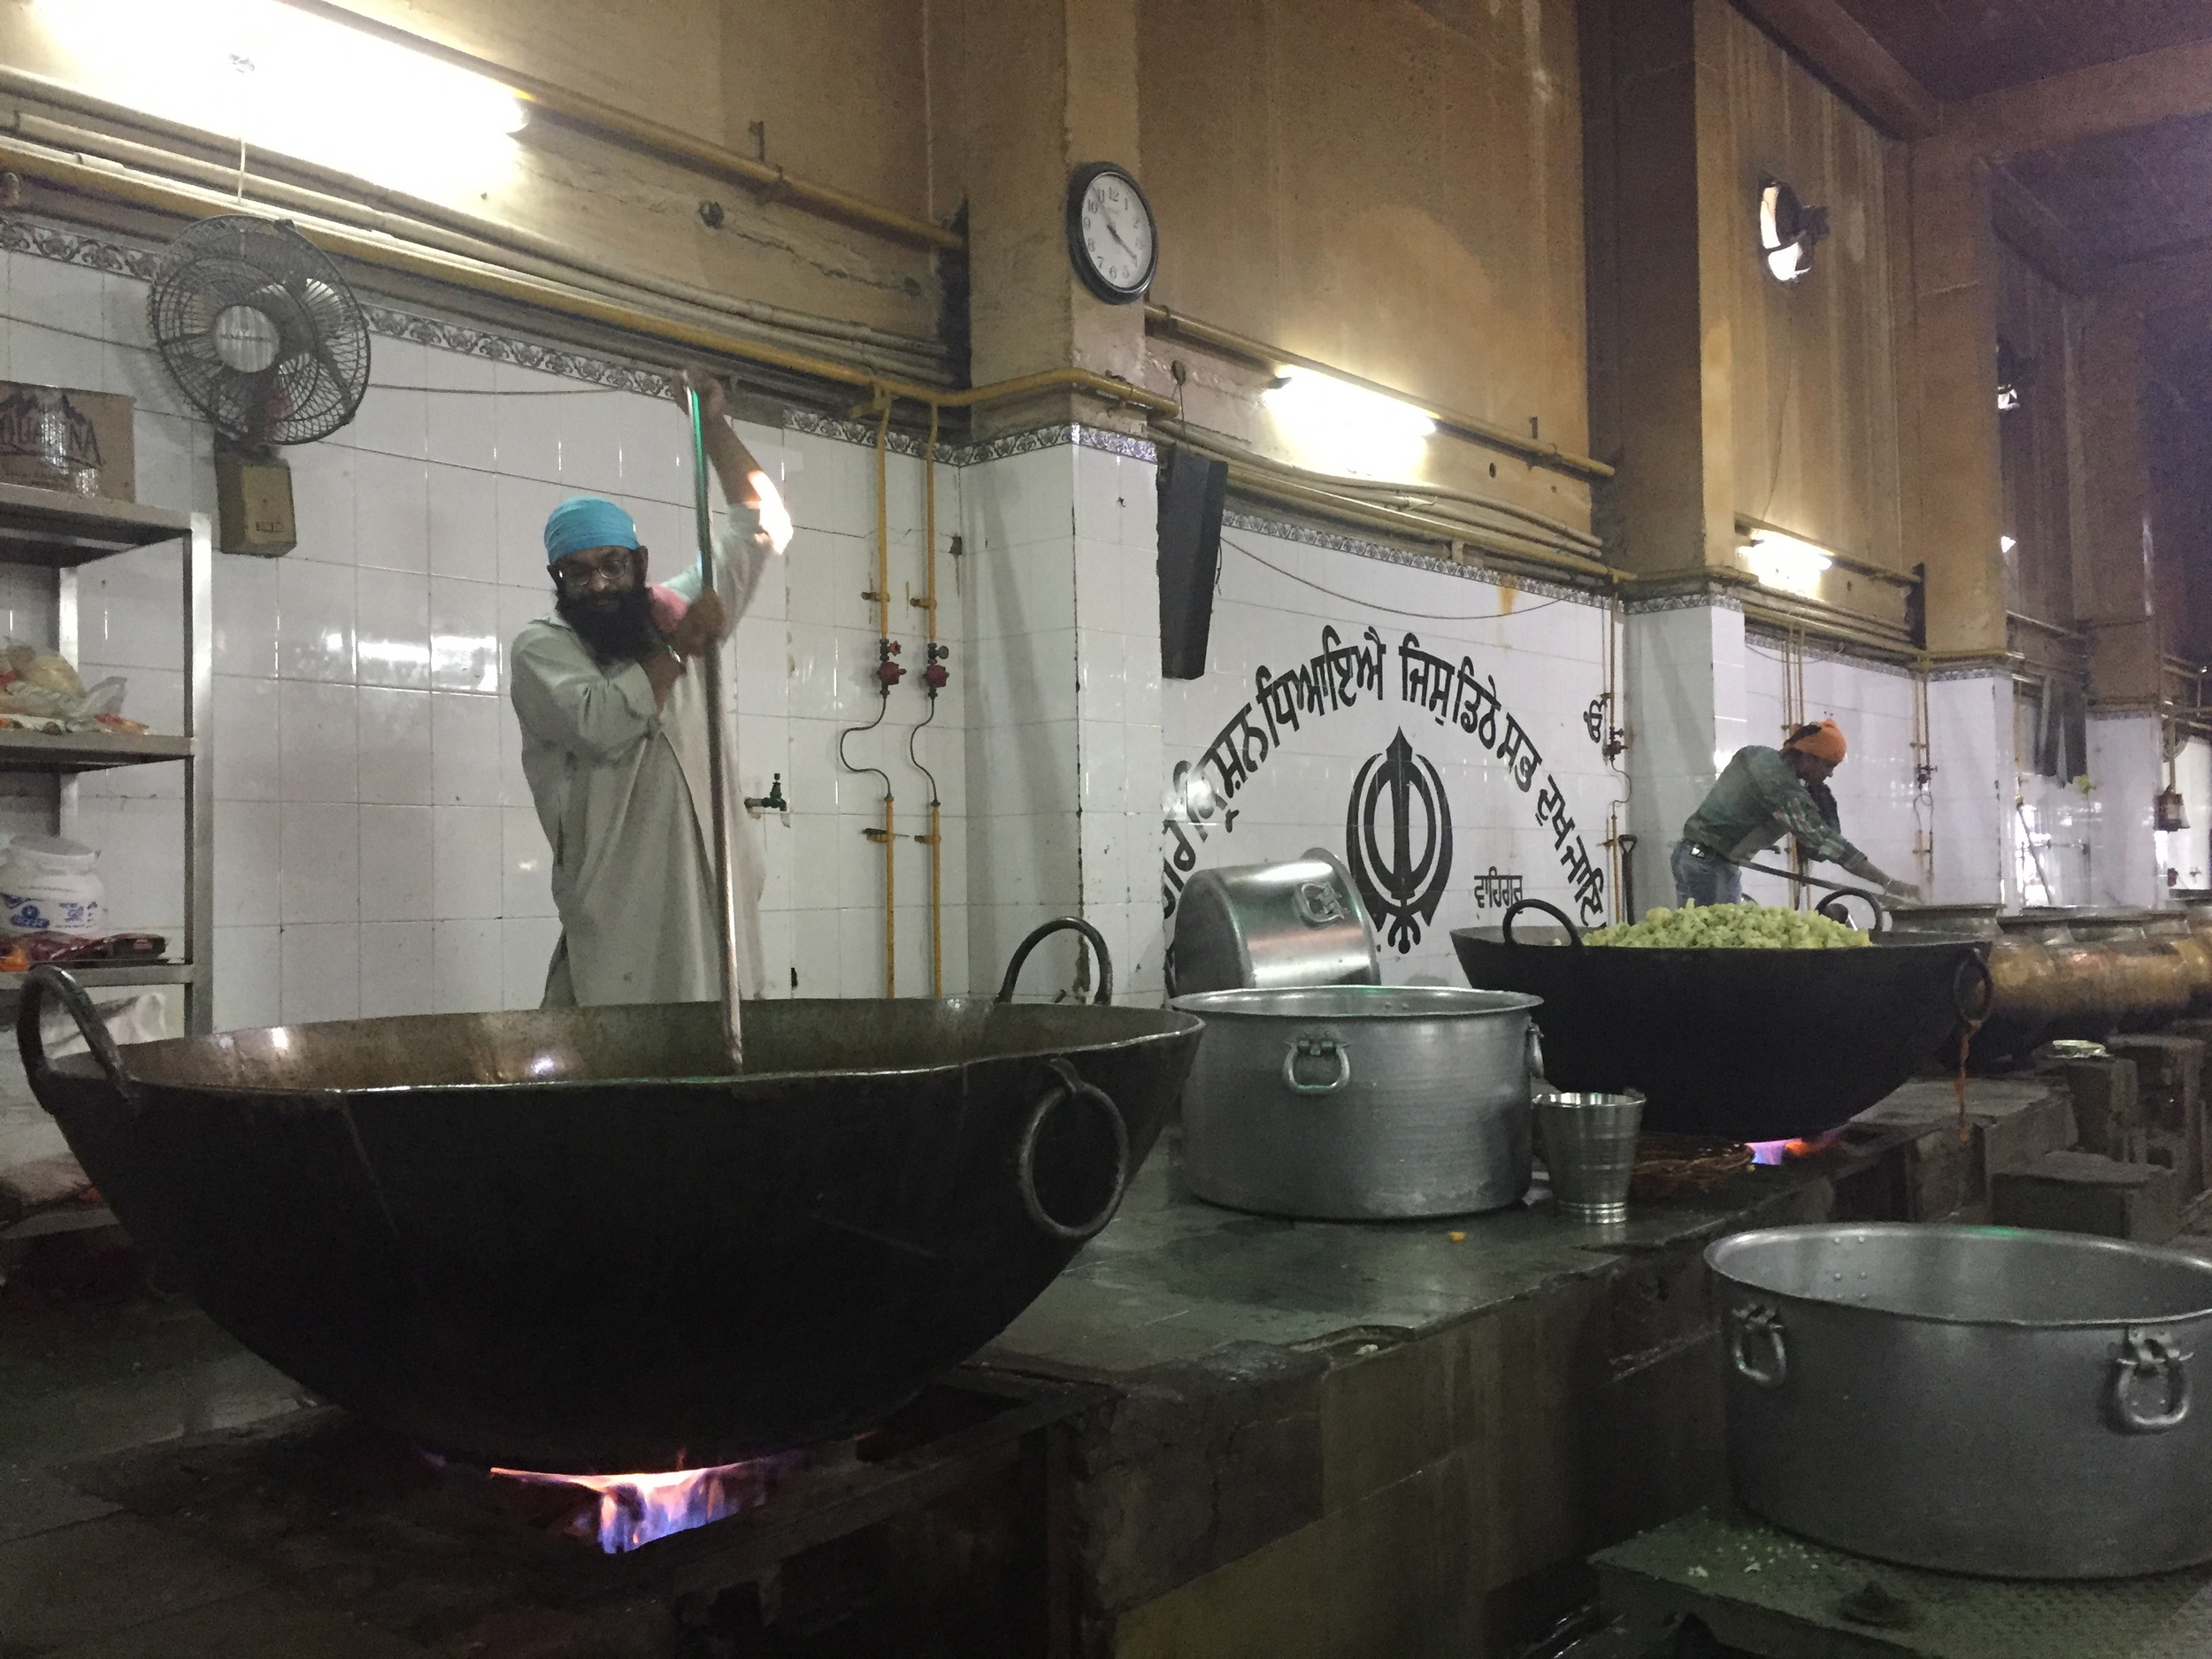 Sikh kitchen staff stir pots of food for the daily meal at Gurudwara Bangla Sahib in Delhi.